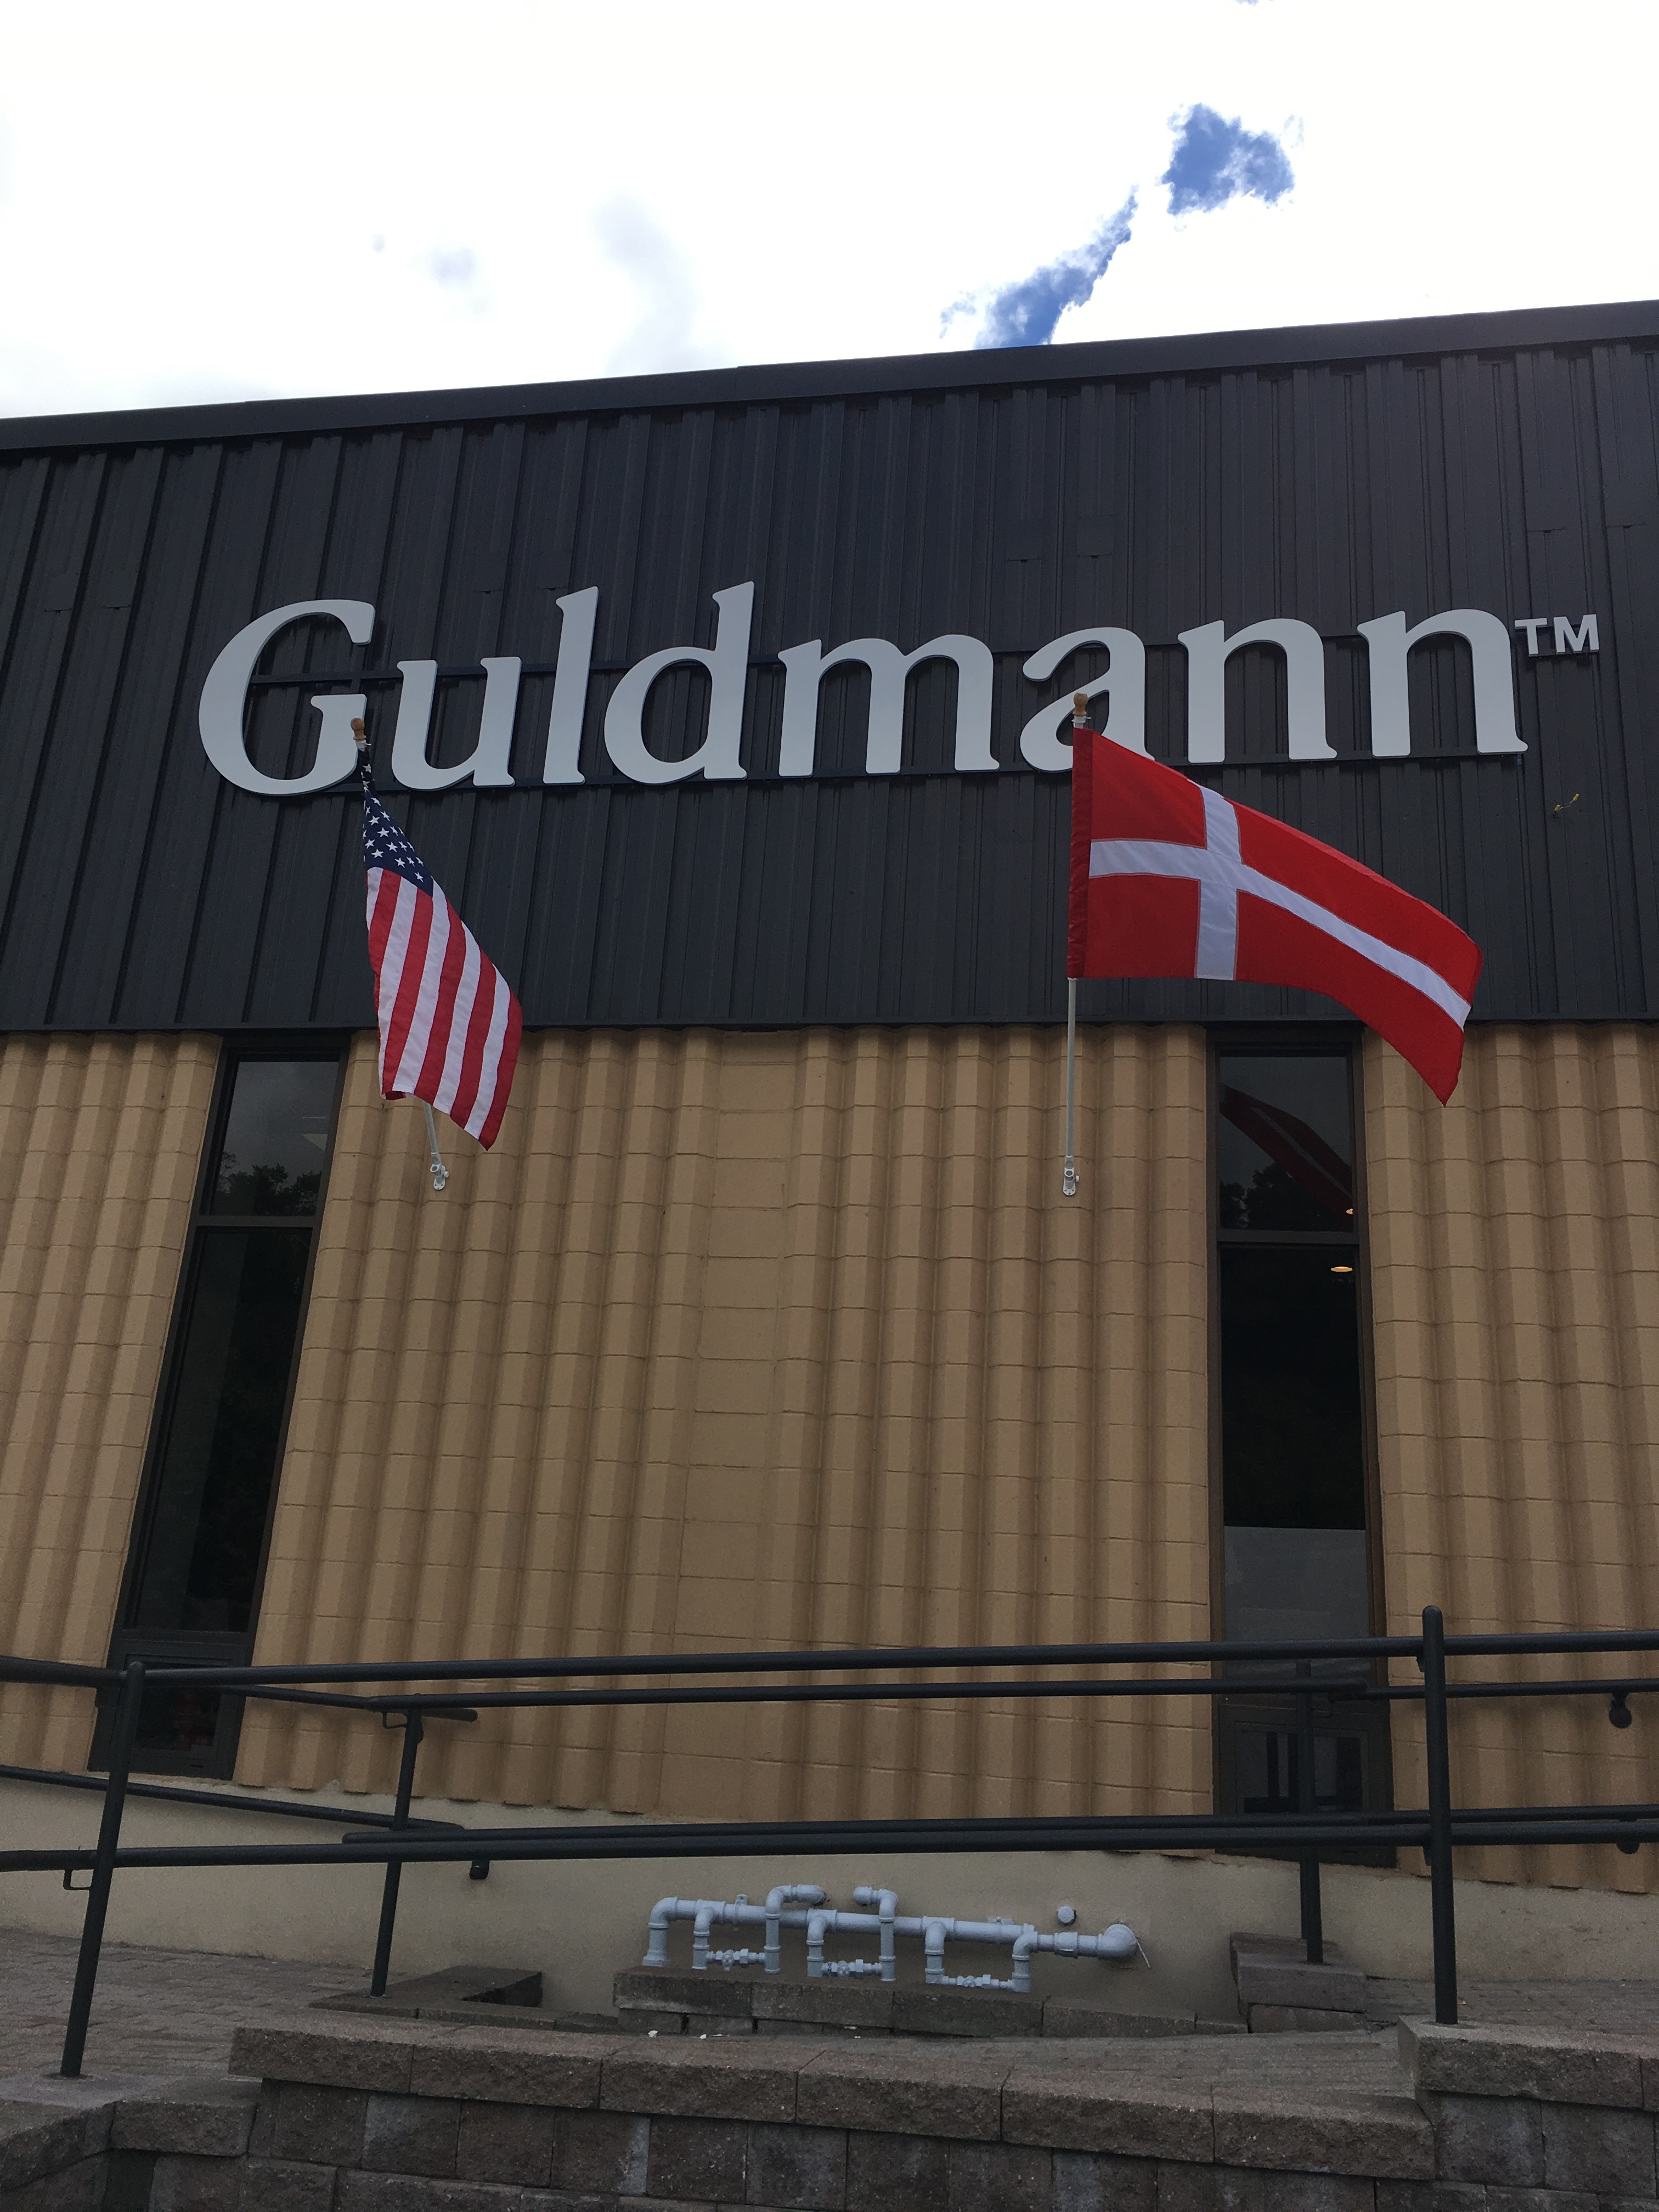 Guldmann Contact Information And Addresses For Local